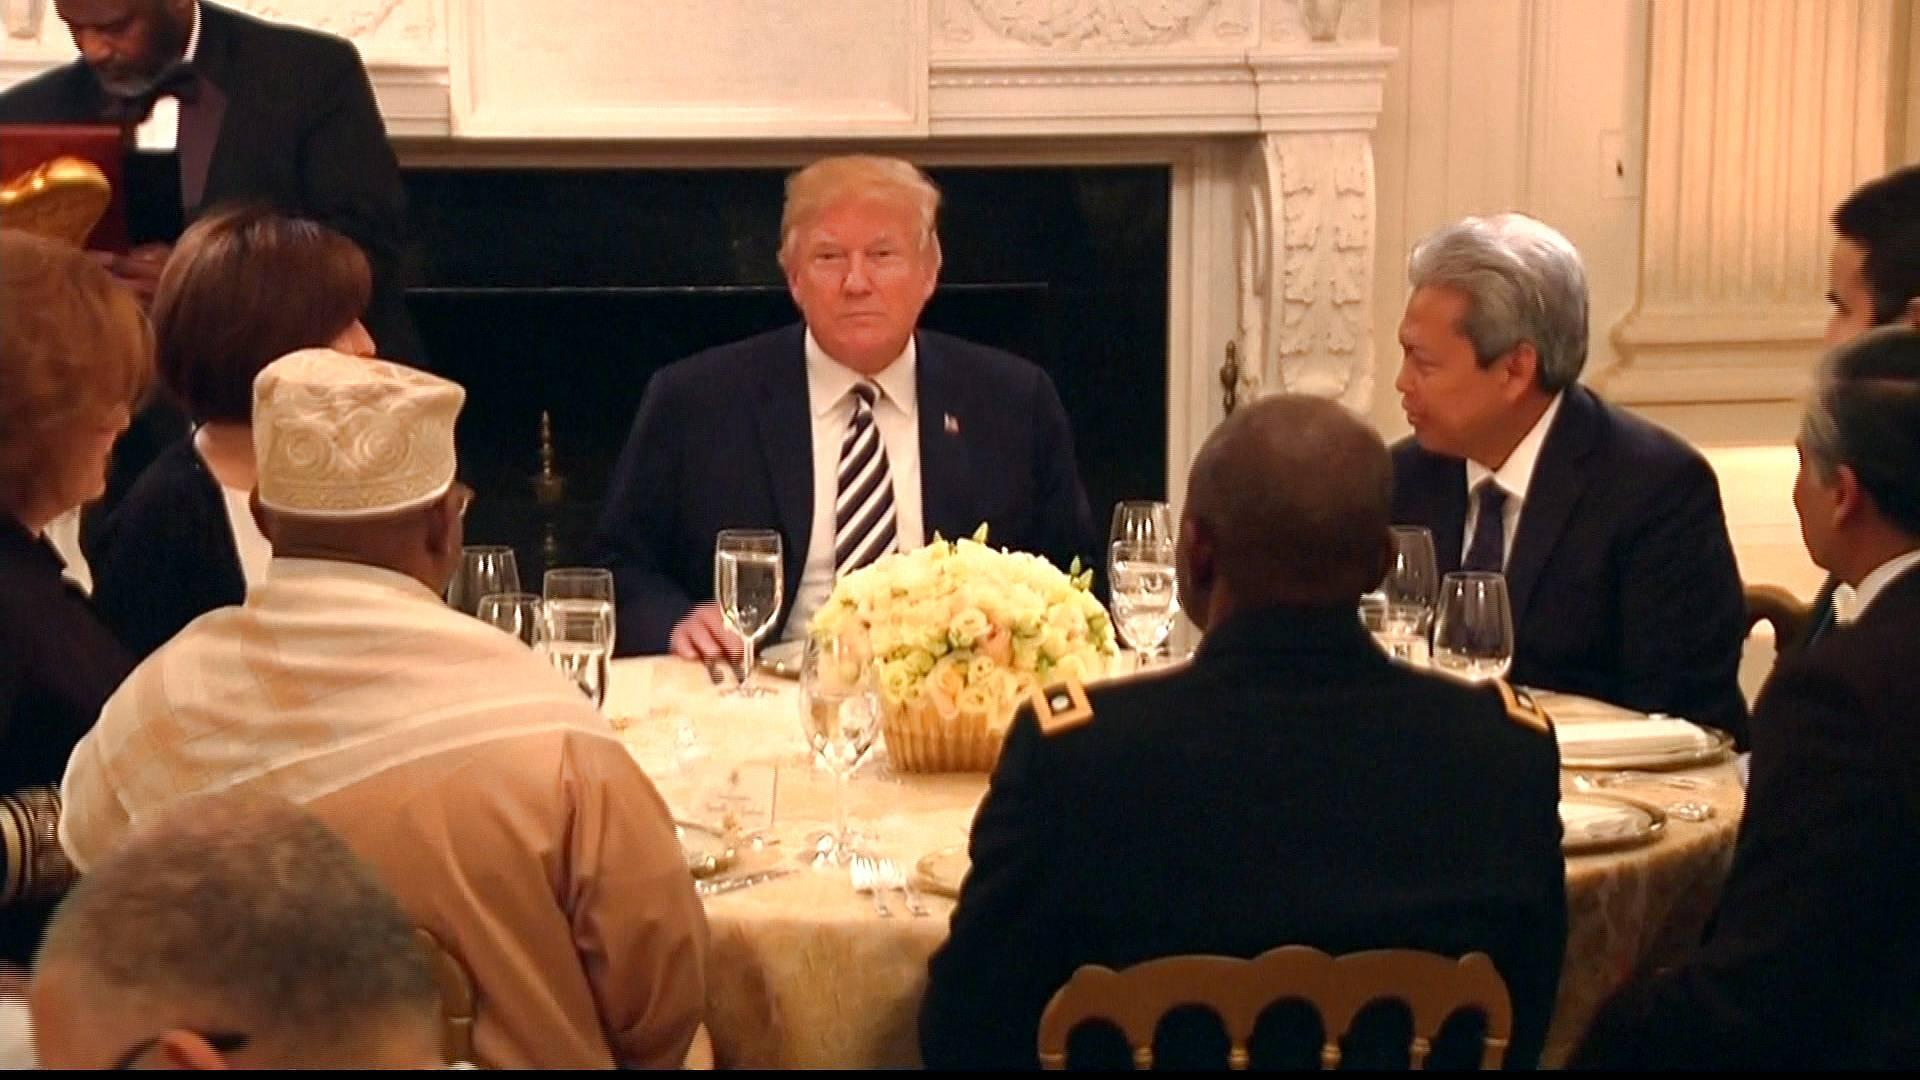 Donal Trump, Bill Clinton, Muslims, Iftar Party, Ramadan, Ramazan, United States President, White House, America, World news